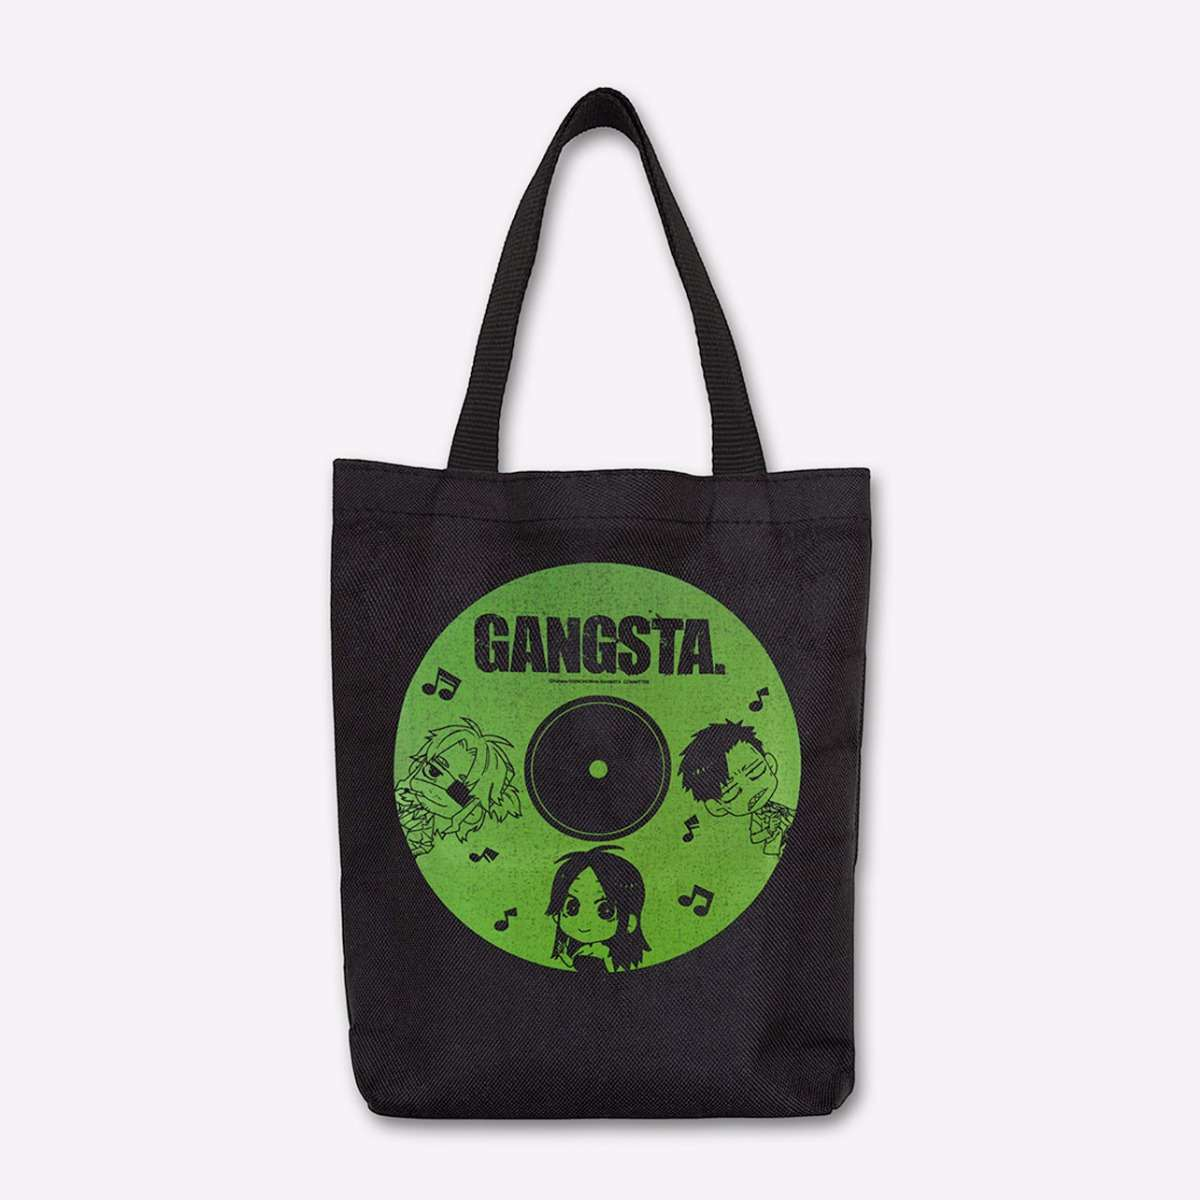 Tote Bag accessories